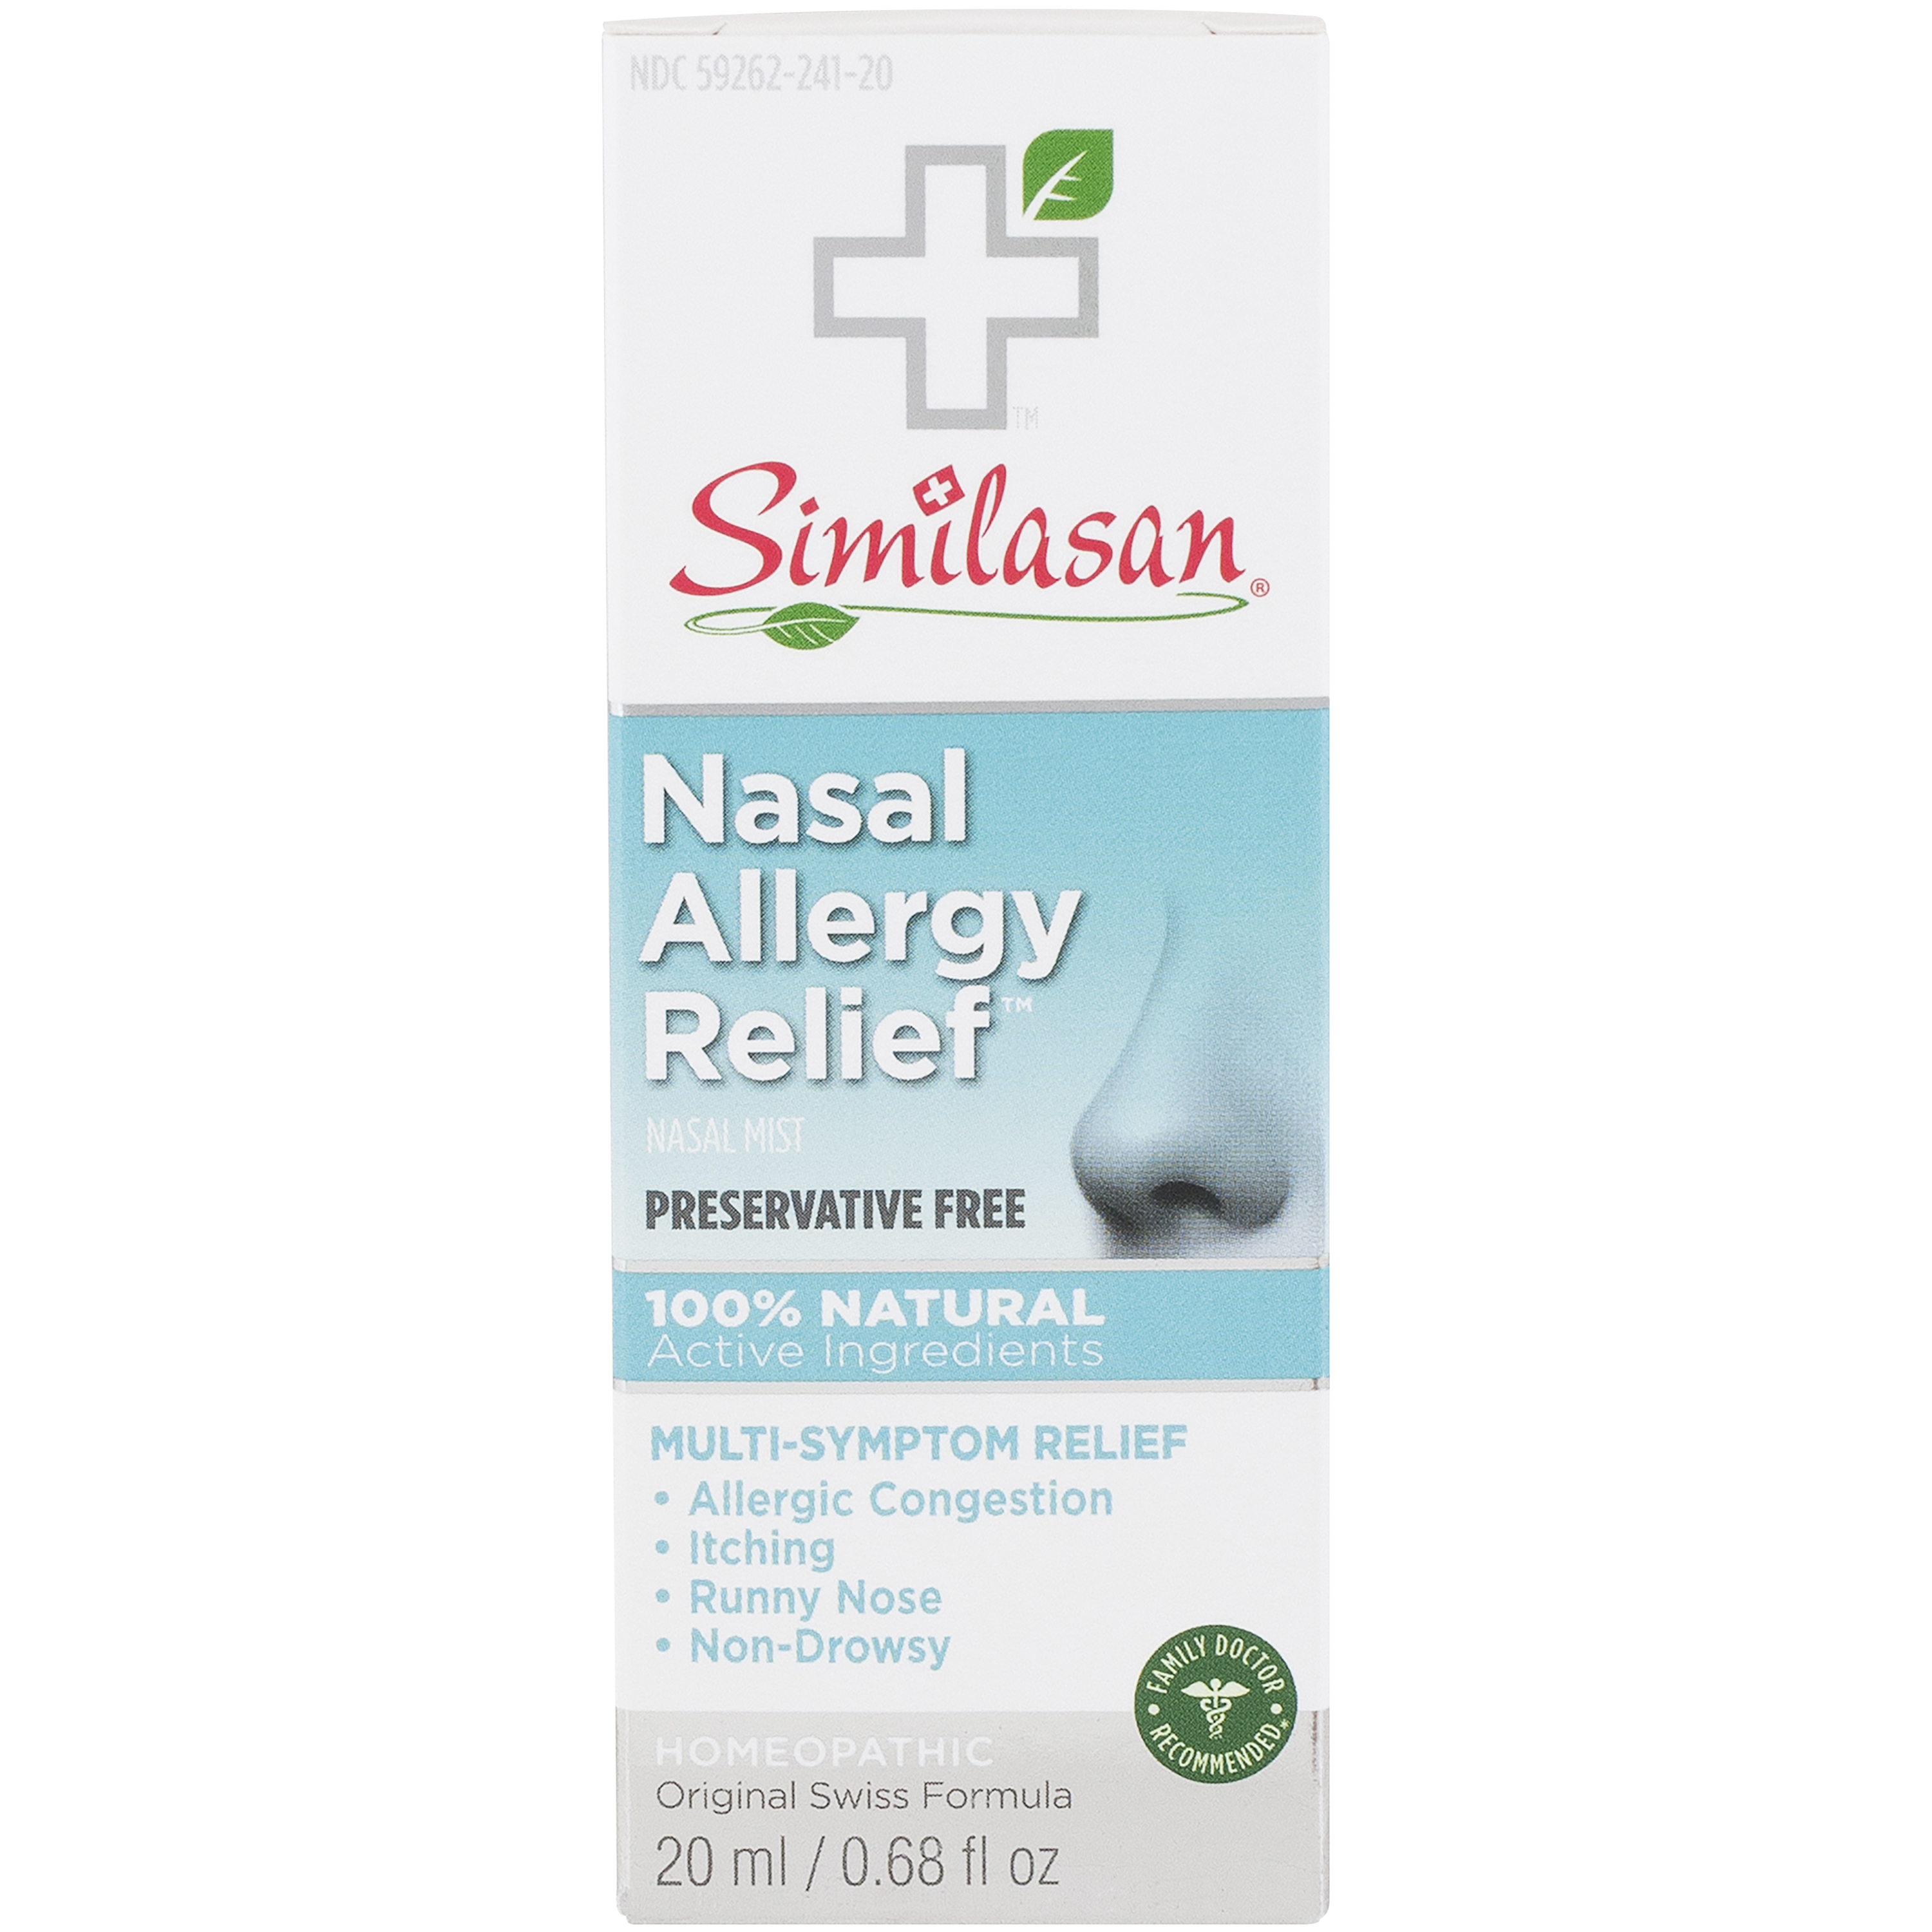 Similasan Nasal Allergy Relief Nasal Spray Preservative Free .68 fl oz